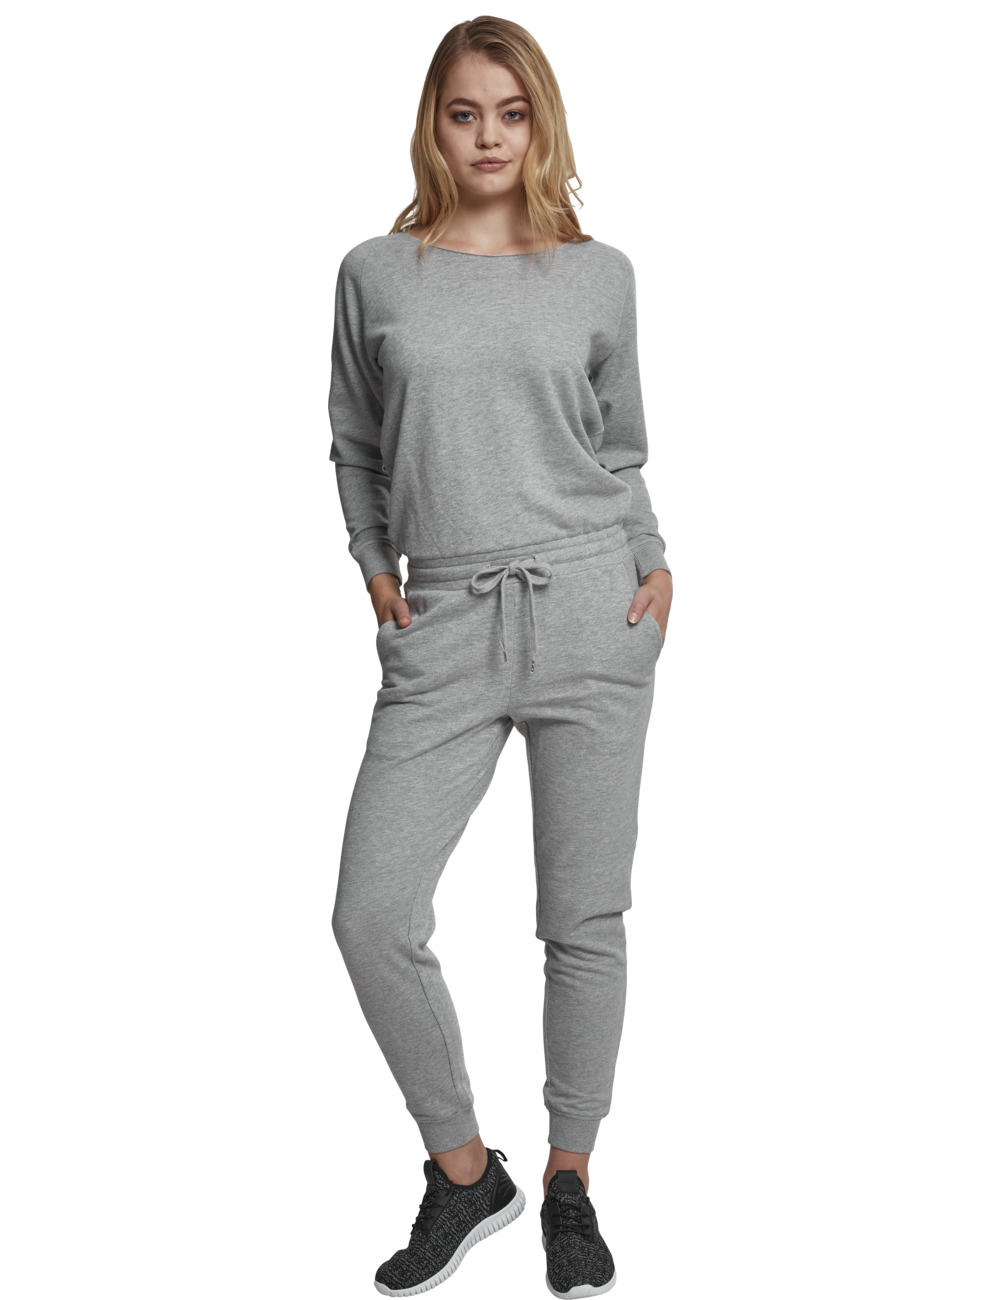 urban-classics-damen-long-sleeve-terry-jumpsuit, 39.90 EUR @ jeans